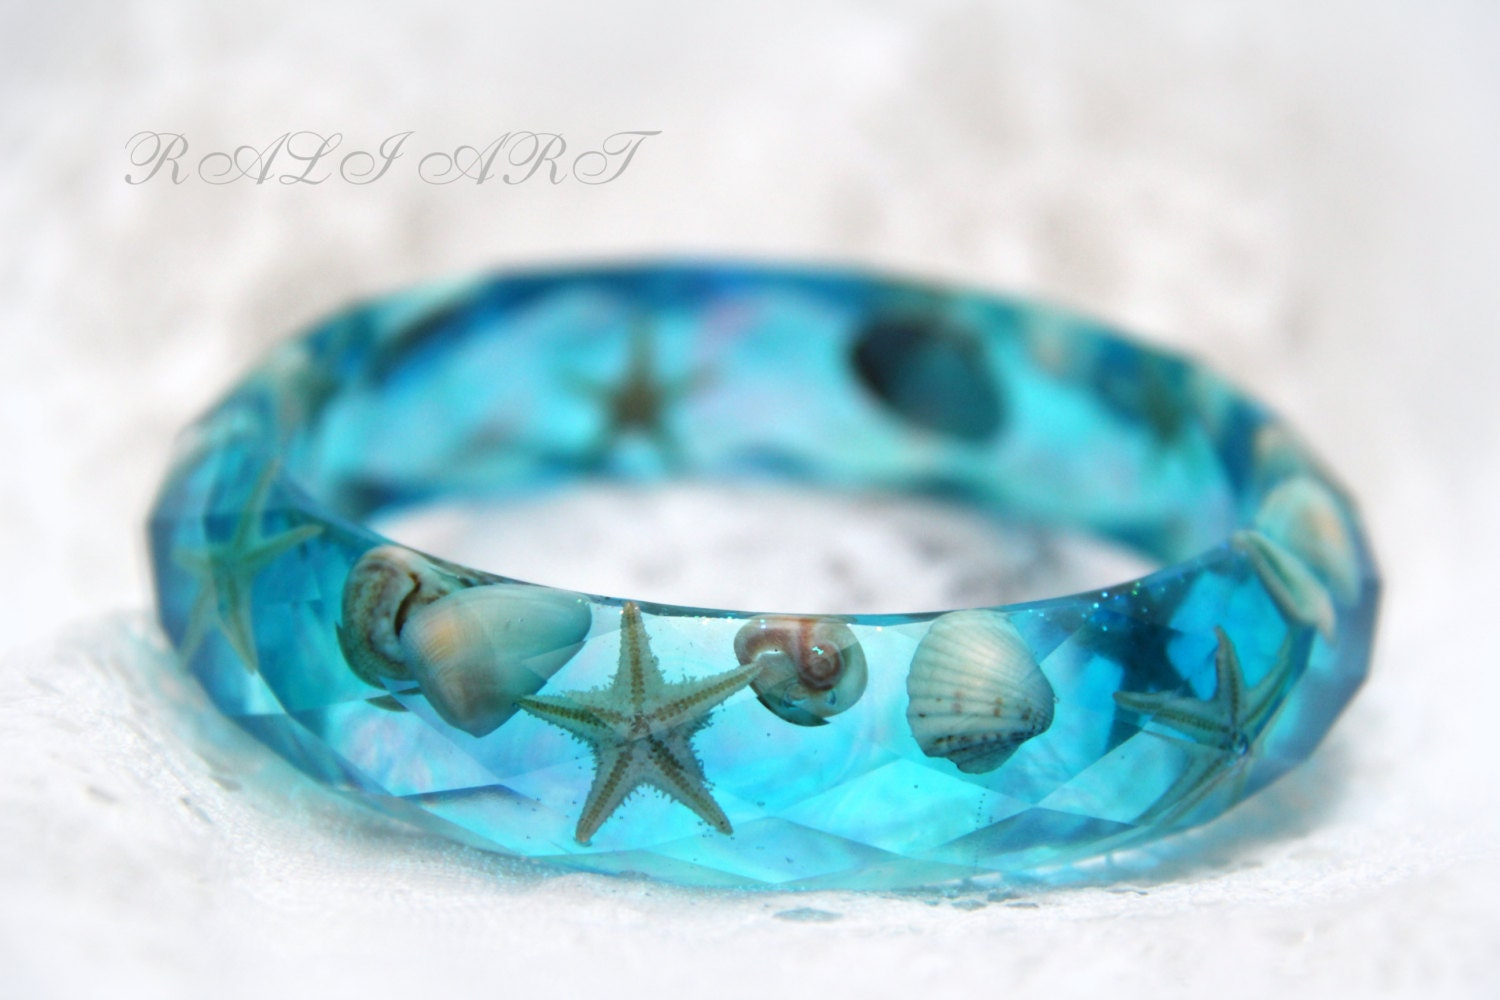 thin resin fullxfull diameter cm il bangles make to massive clear bangle products mold inner shaped stacking flower